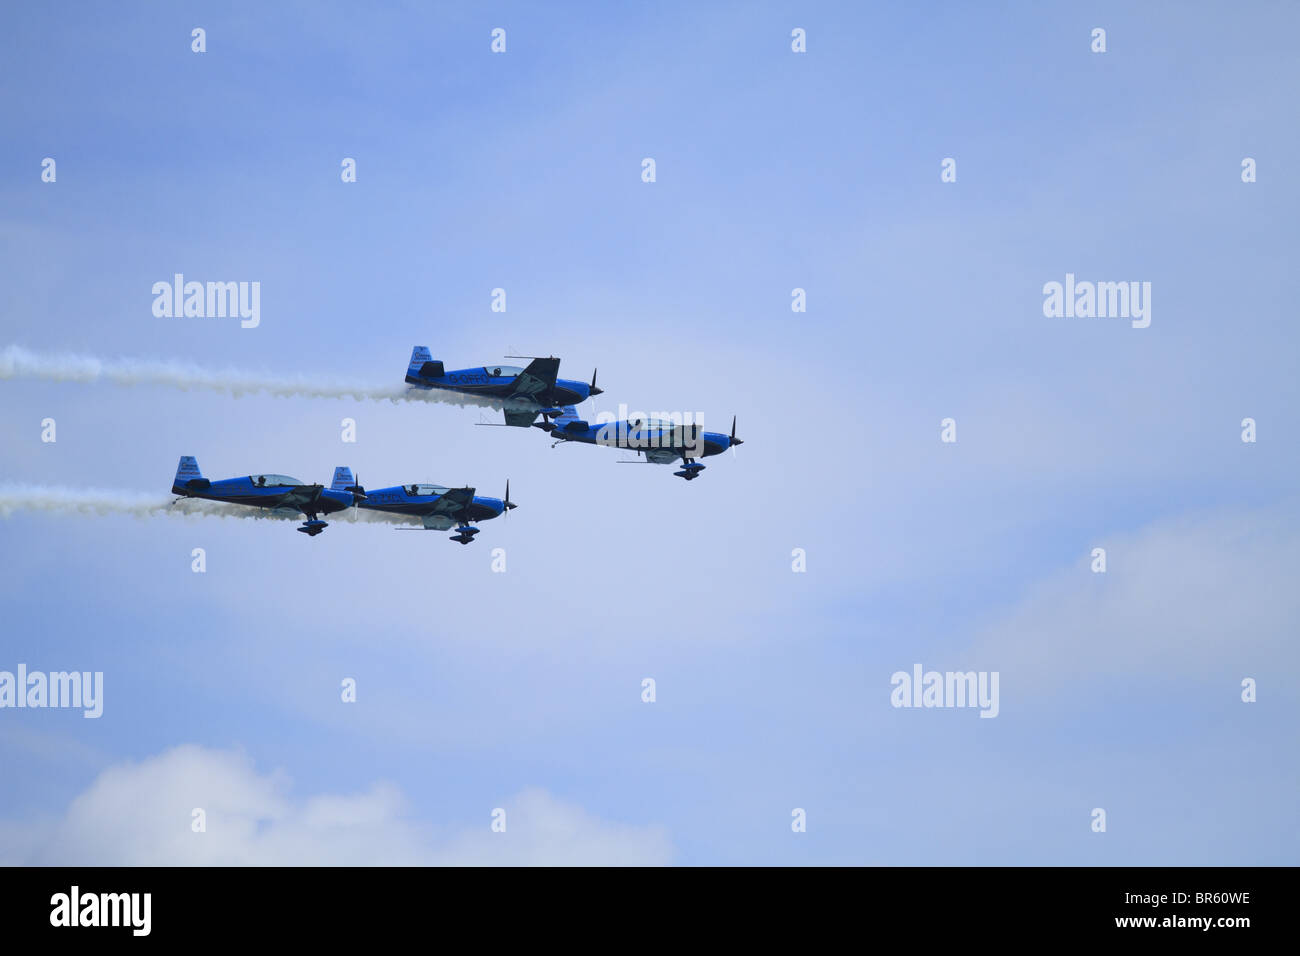 The Blades formation Aerobatic Display Team at Eastbourne Air Show, East Sussex, England. - Stock Image